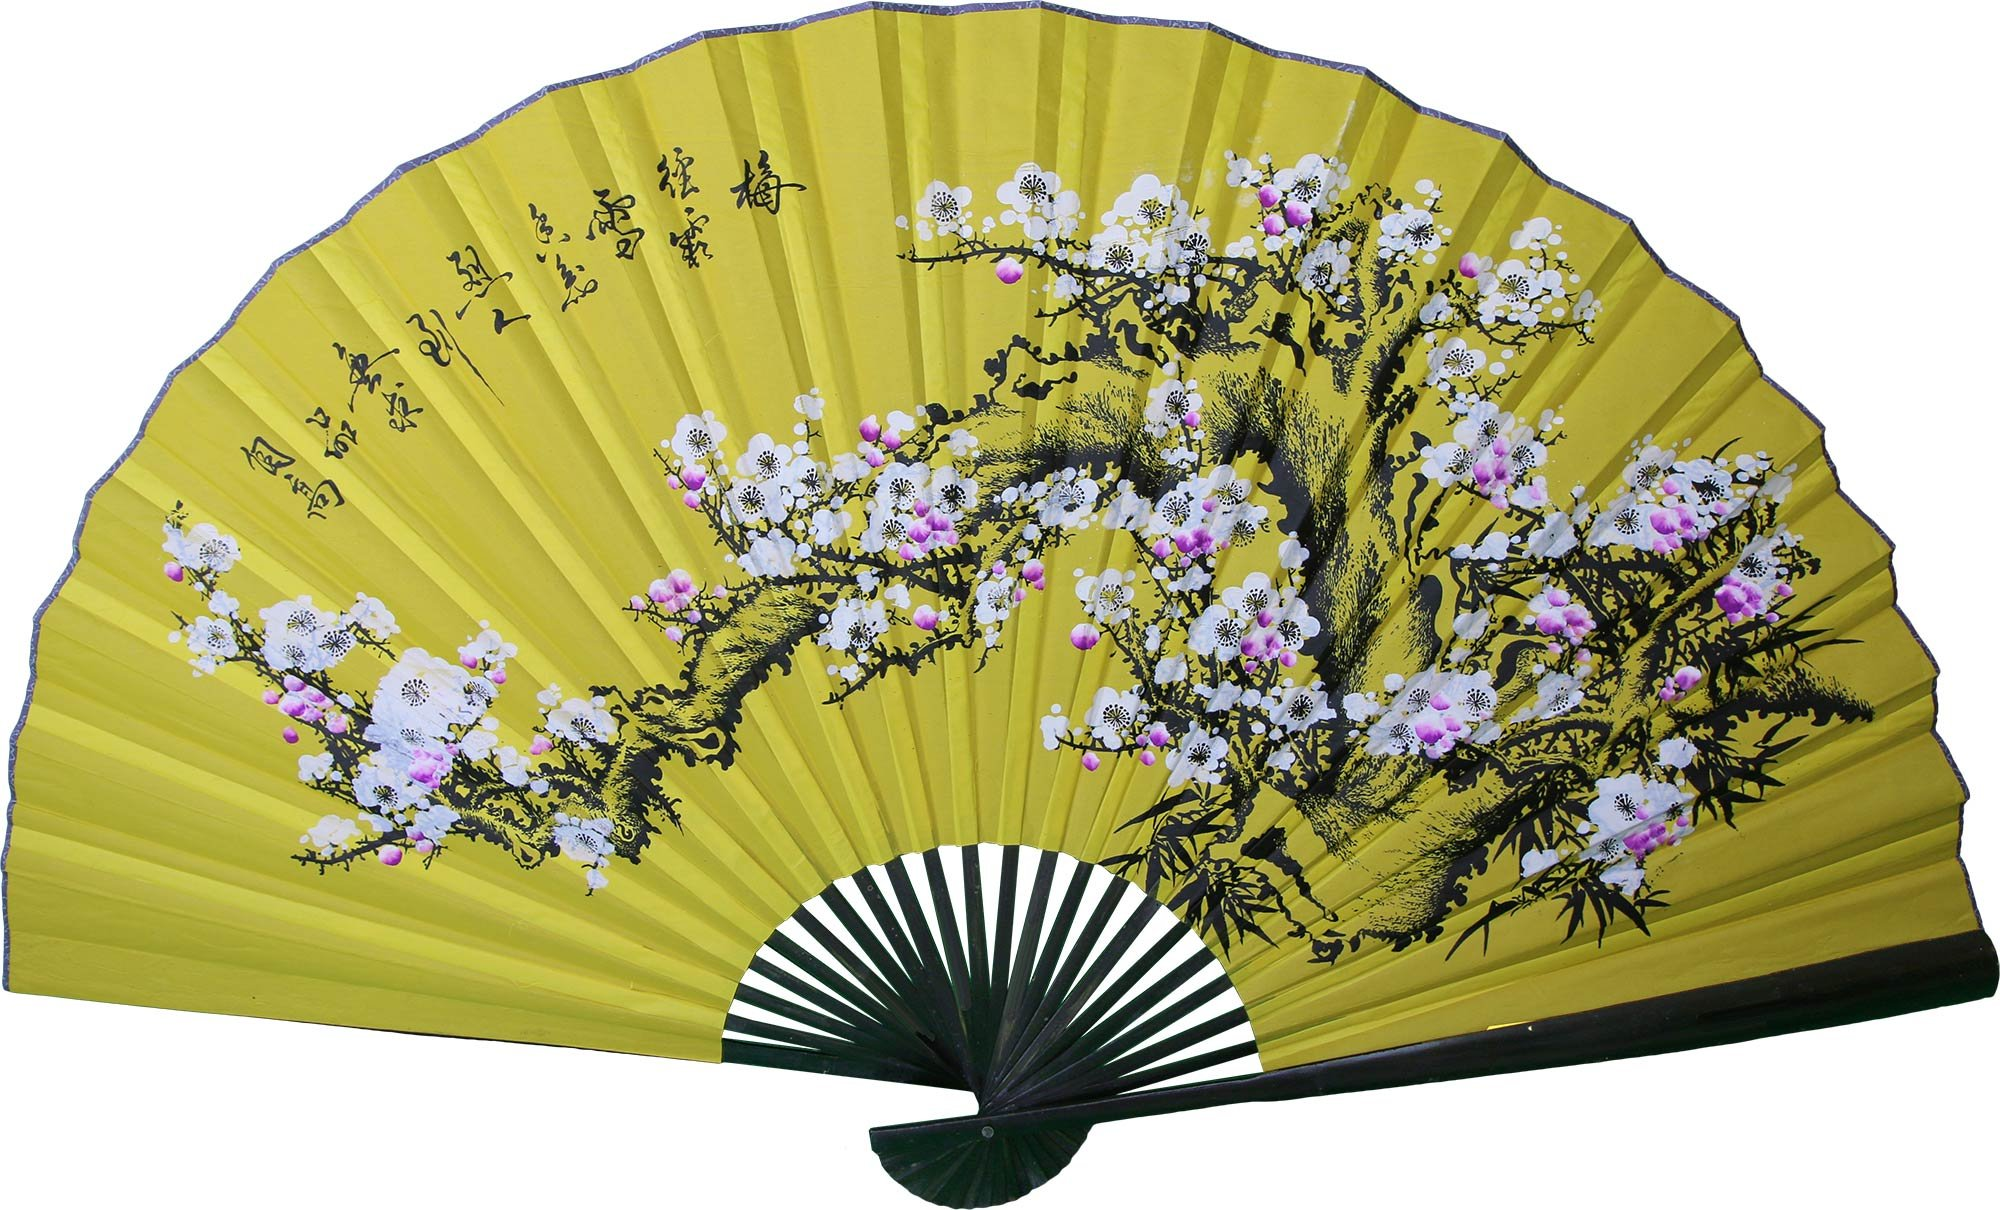 Outstanding Decorative Fans For Walls Image - The Wall Art ...